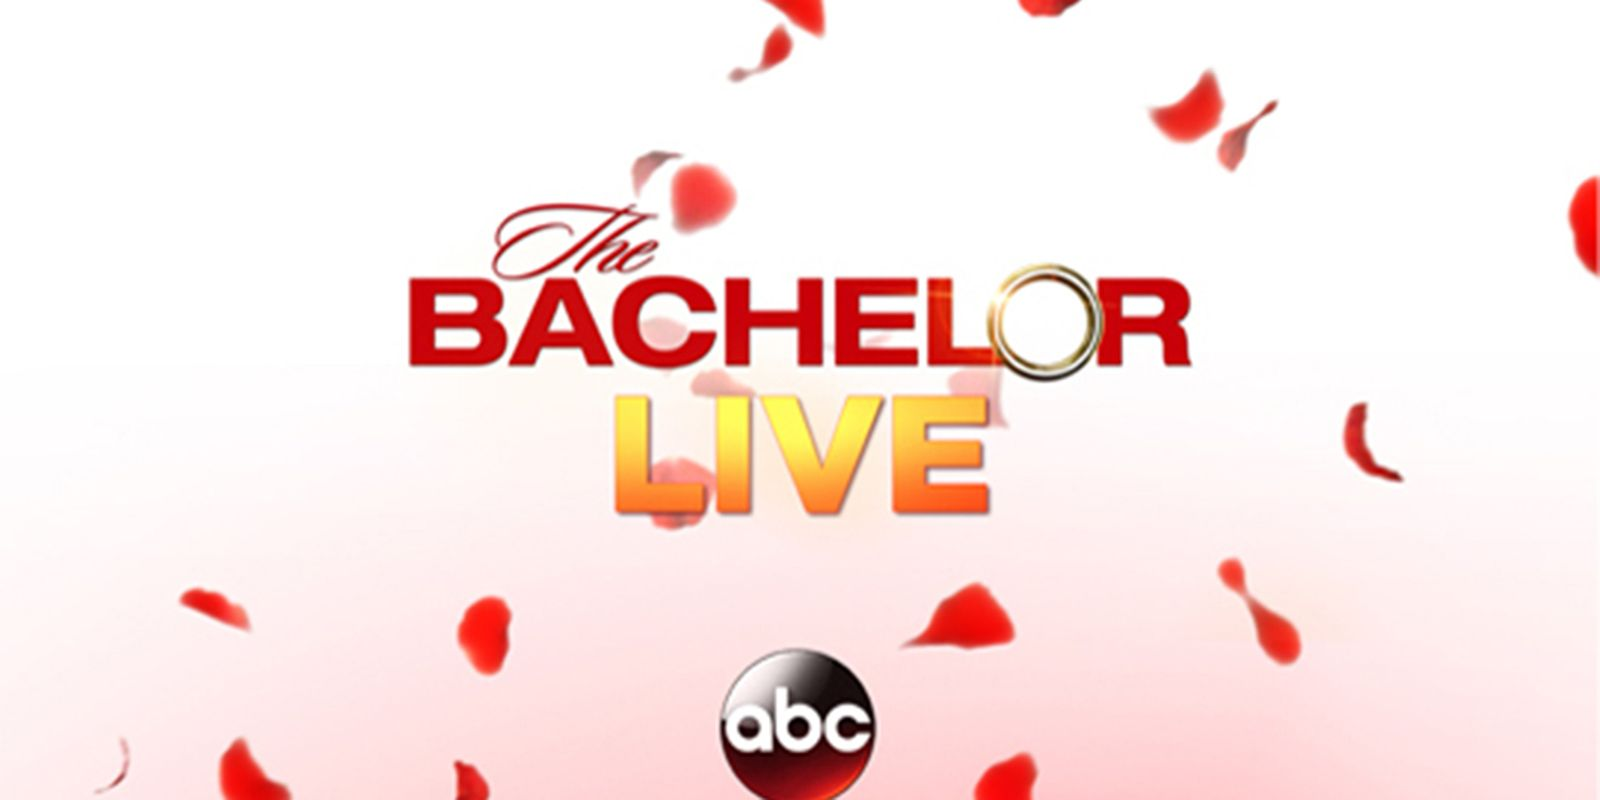 the-bachelor-live-crop-rev.jpg